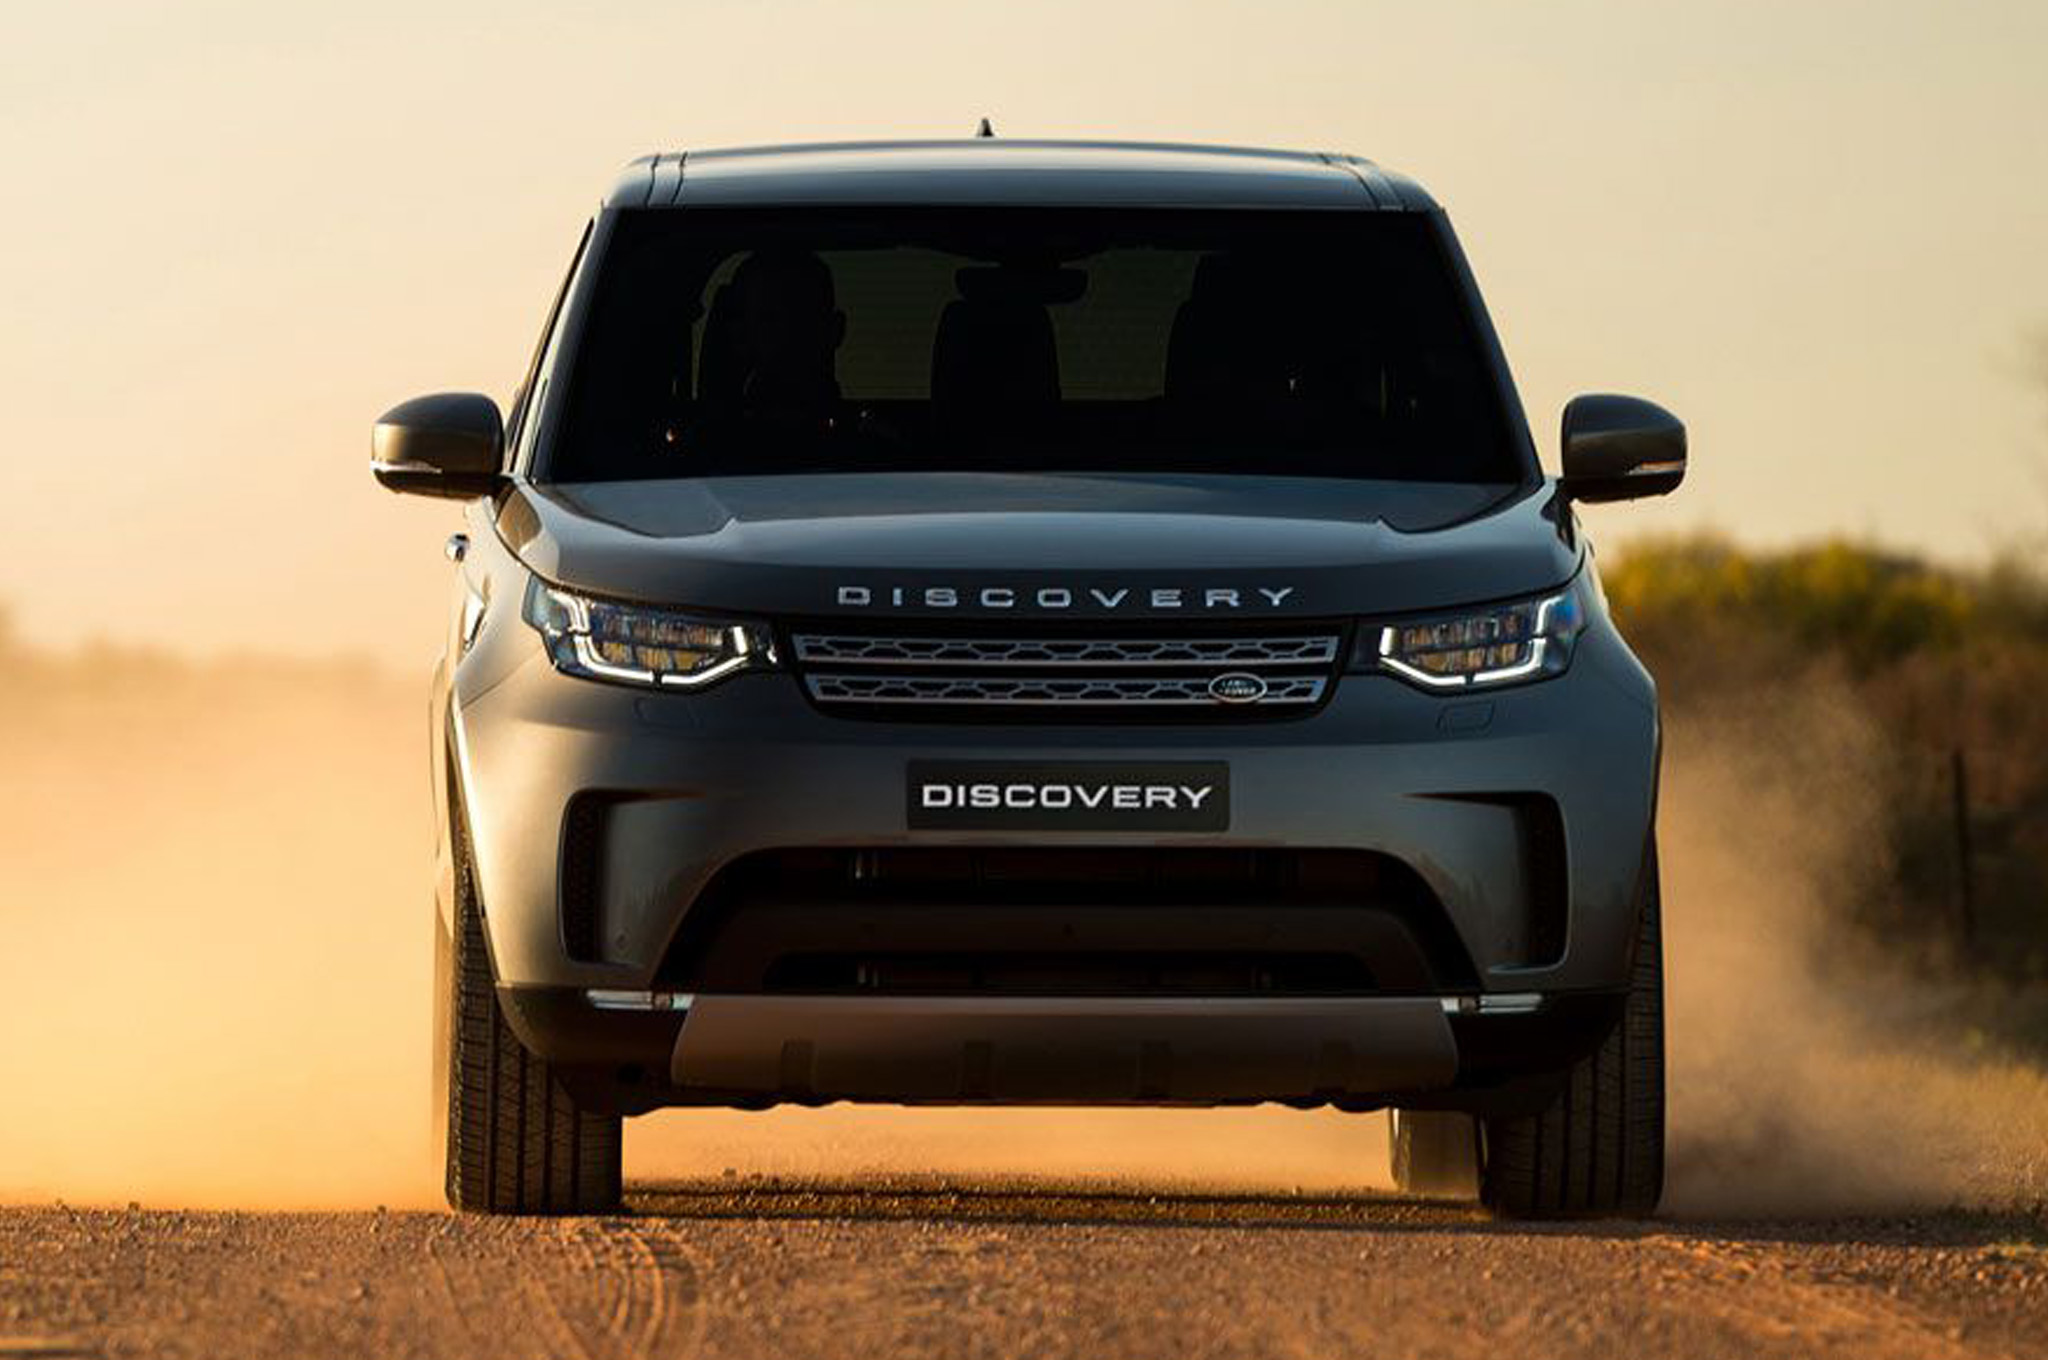 2018-land-rover-discovery-td6-front-view.jpg